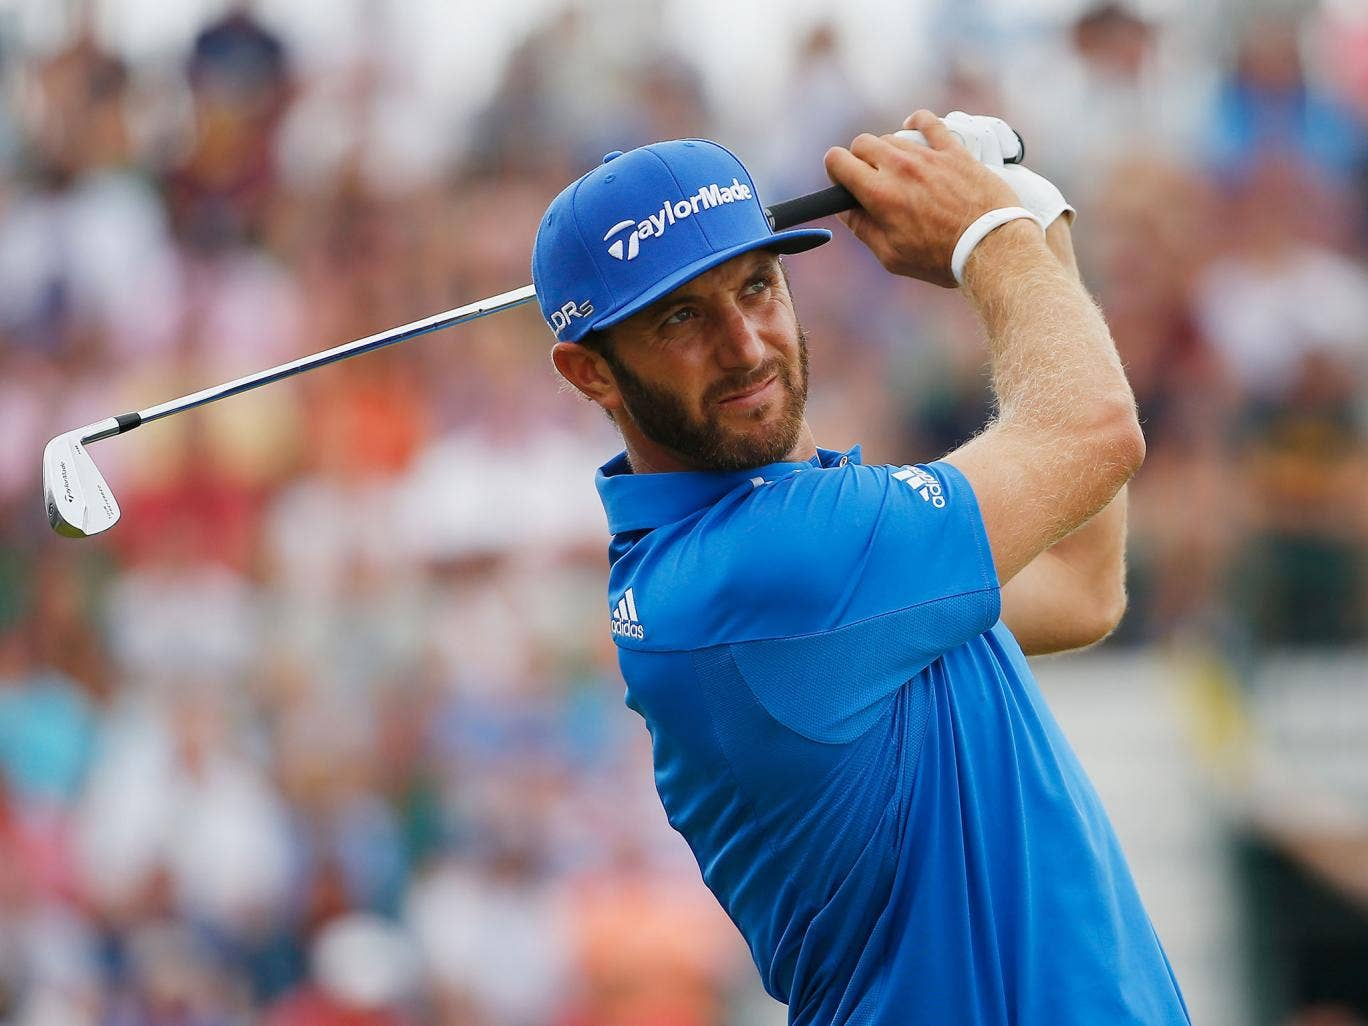 Dustin Johnson in action during the Open Championship